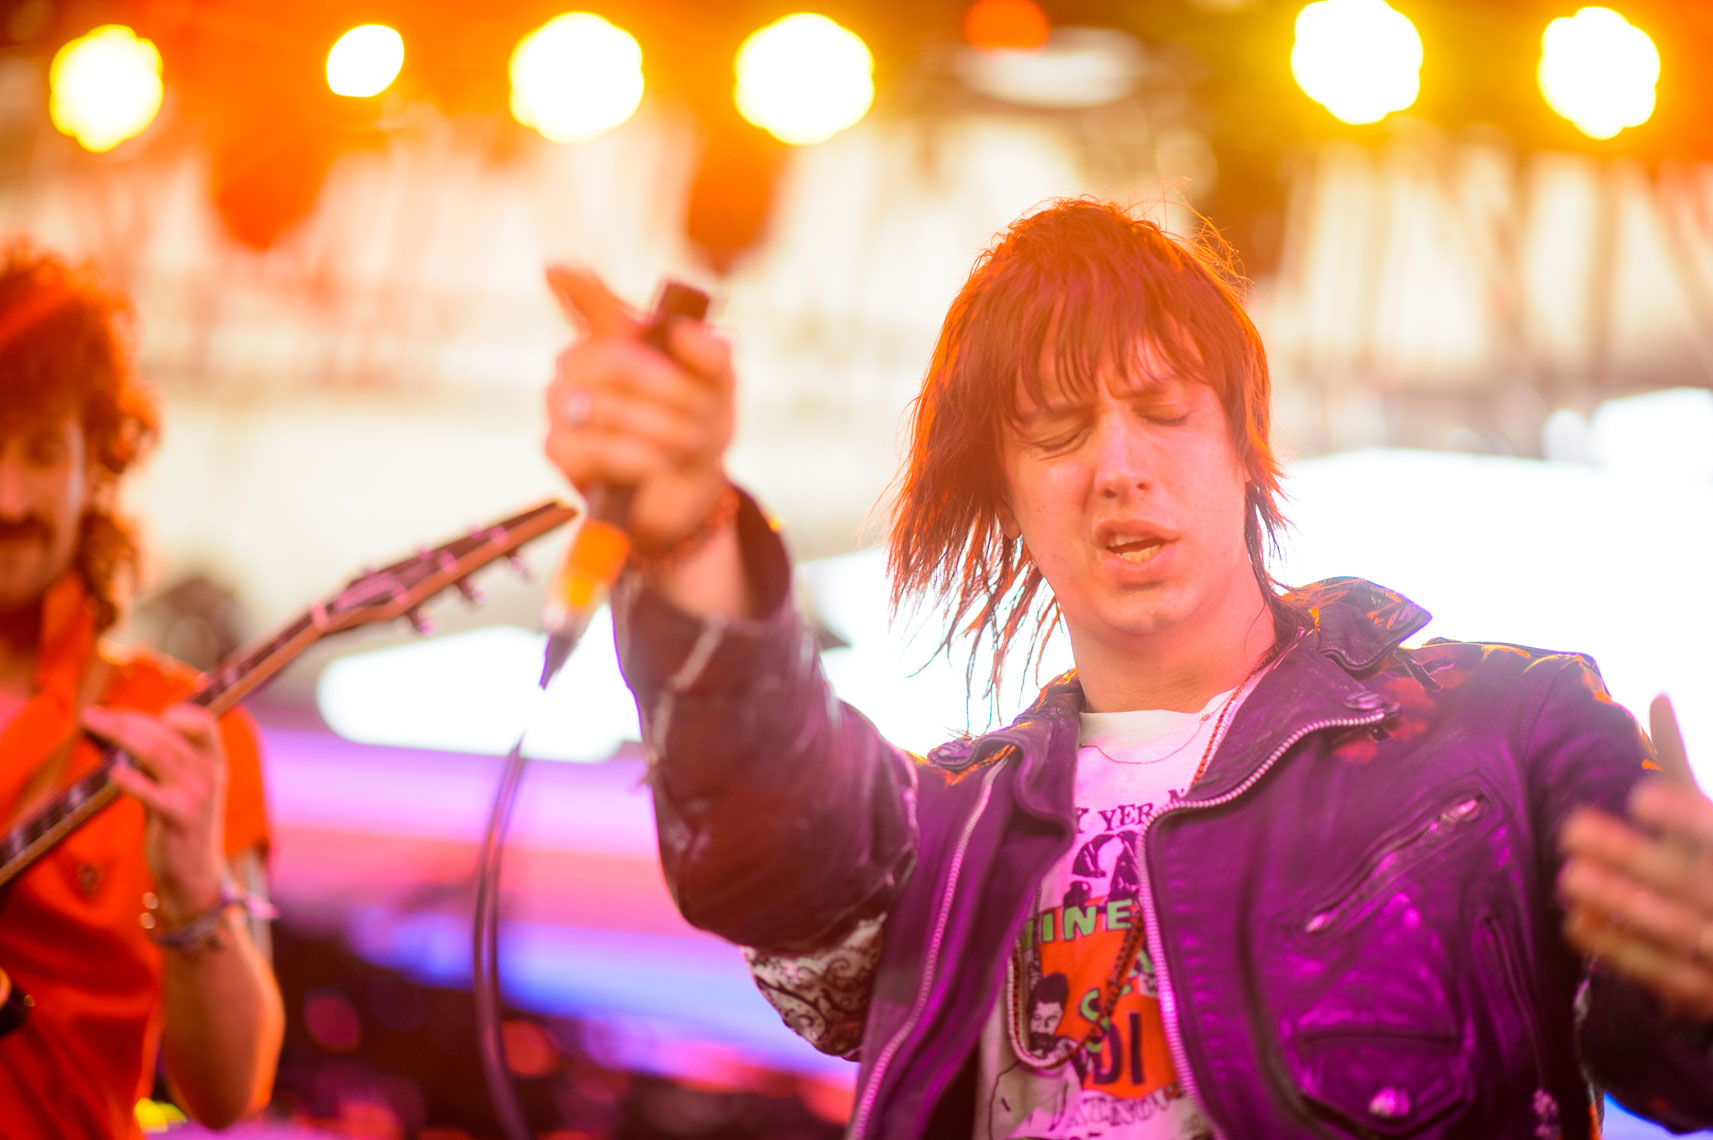 Julian Casablancas at Coachella 2014